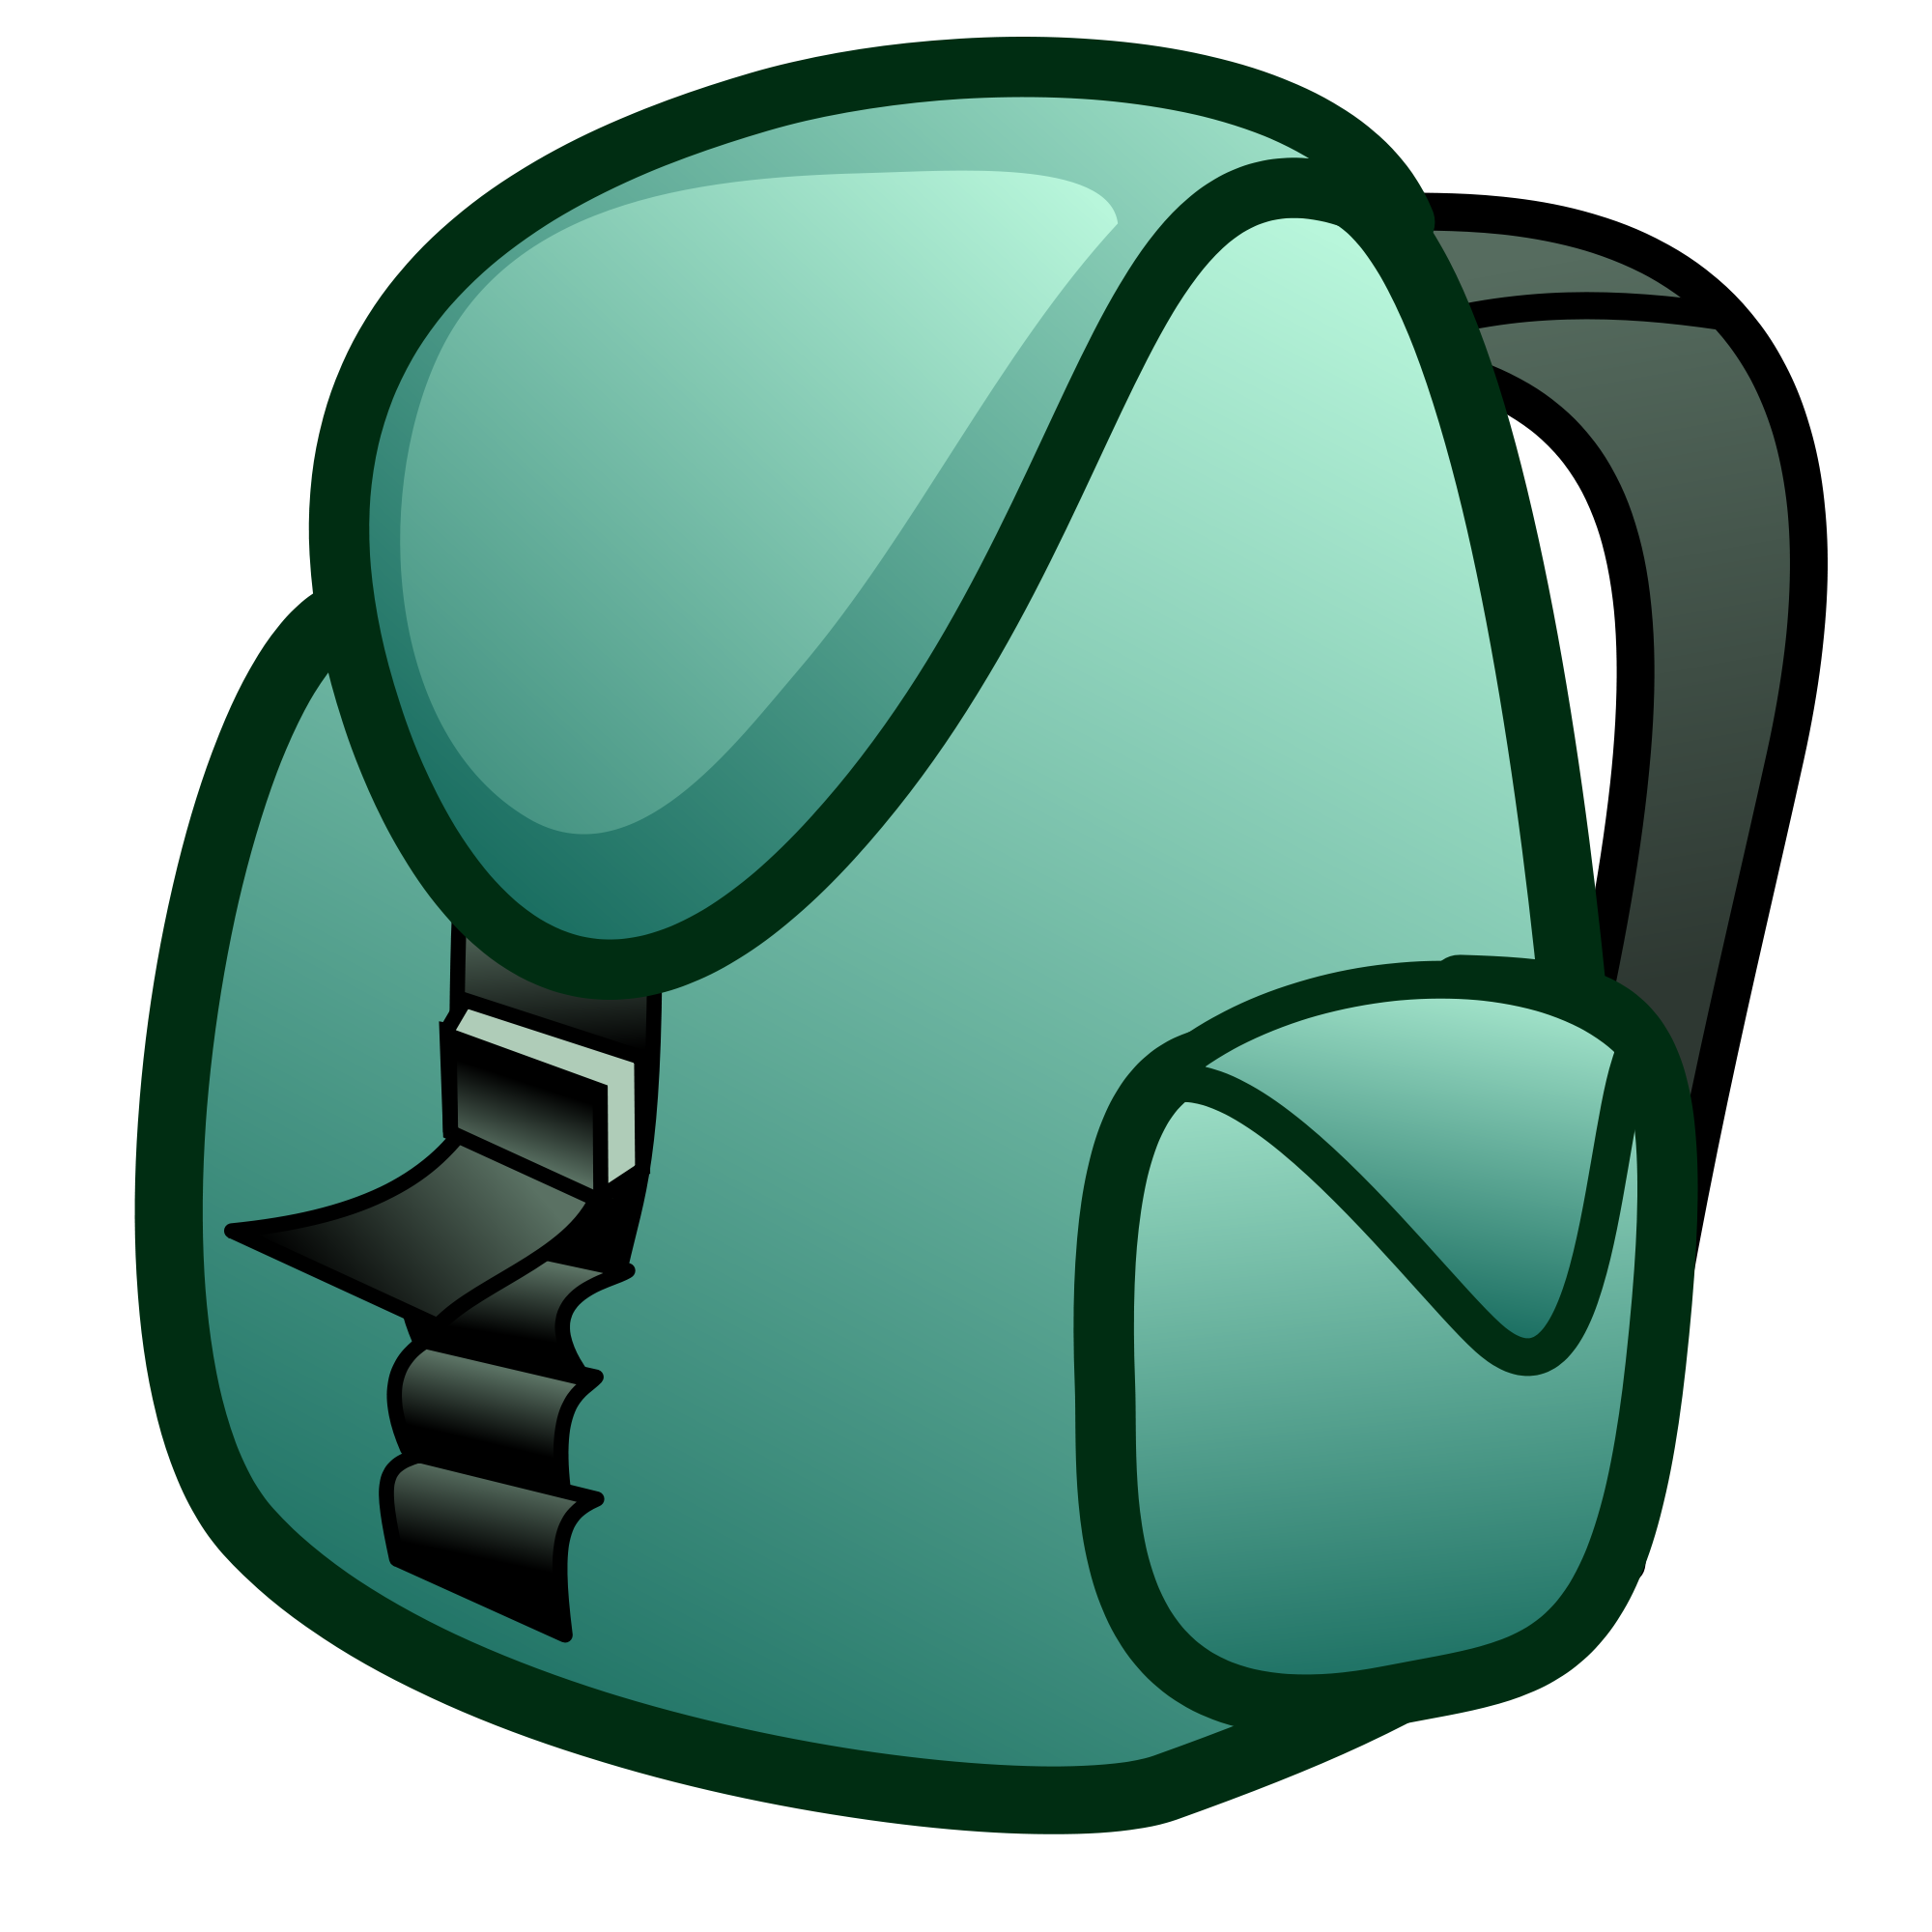 Clipart backpack svg. File exquisite wikimedia commons